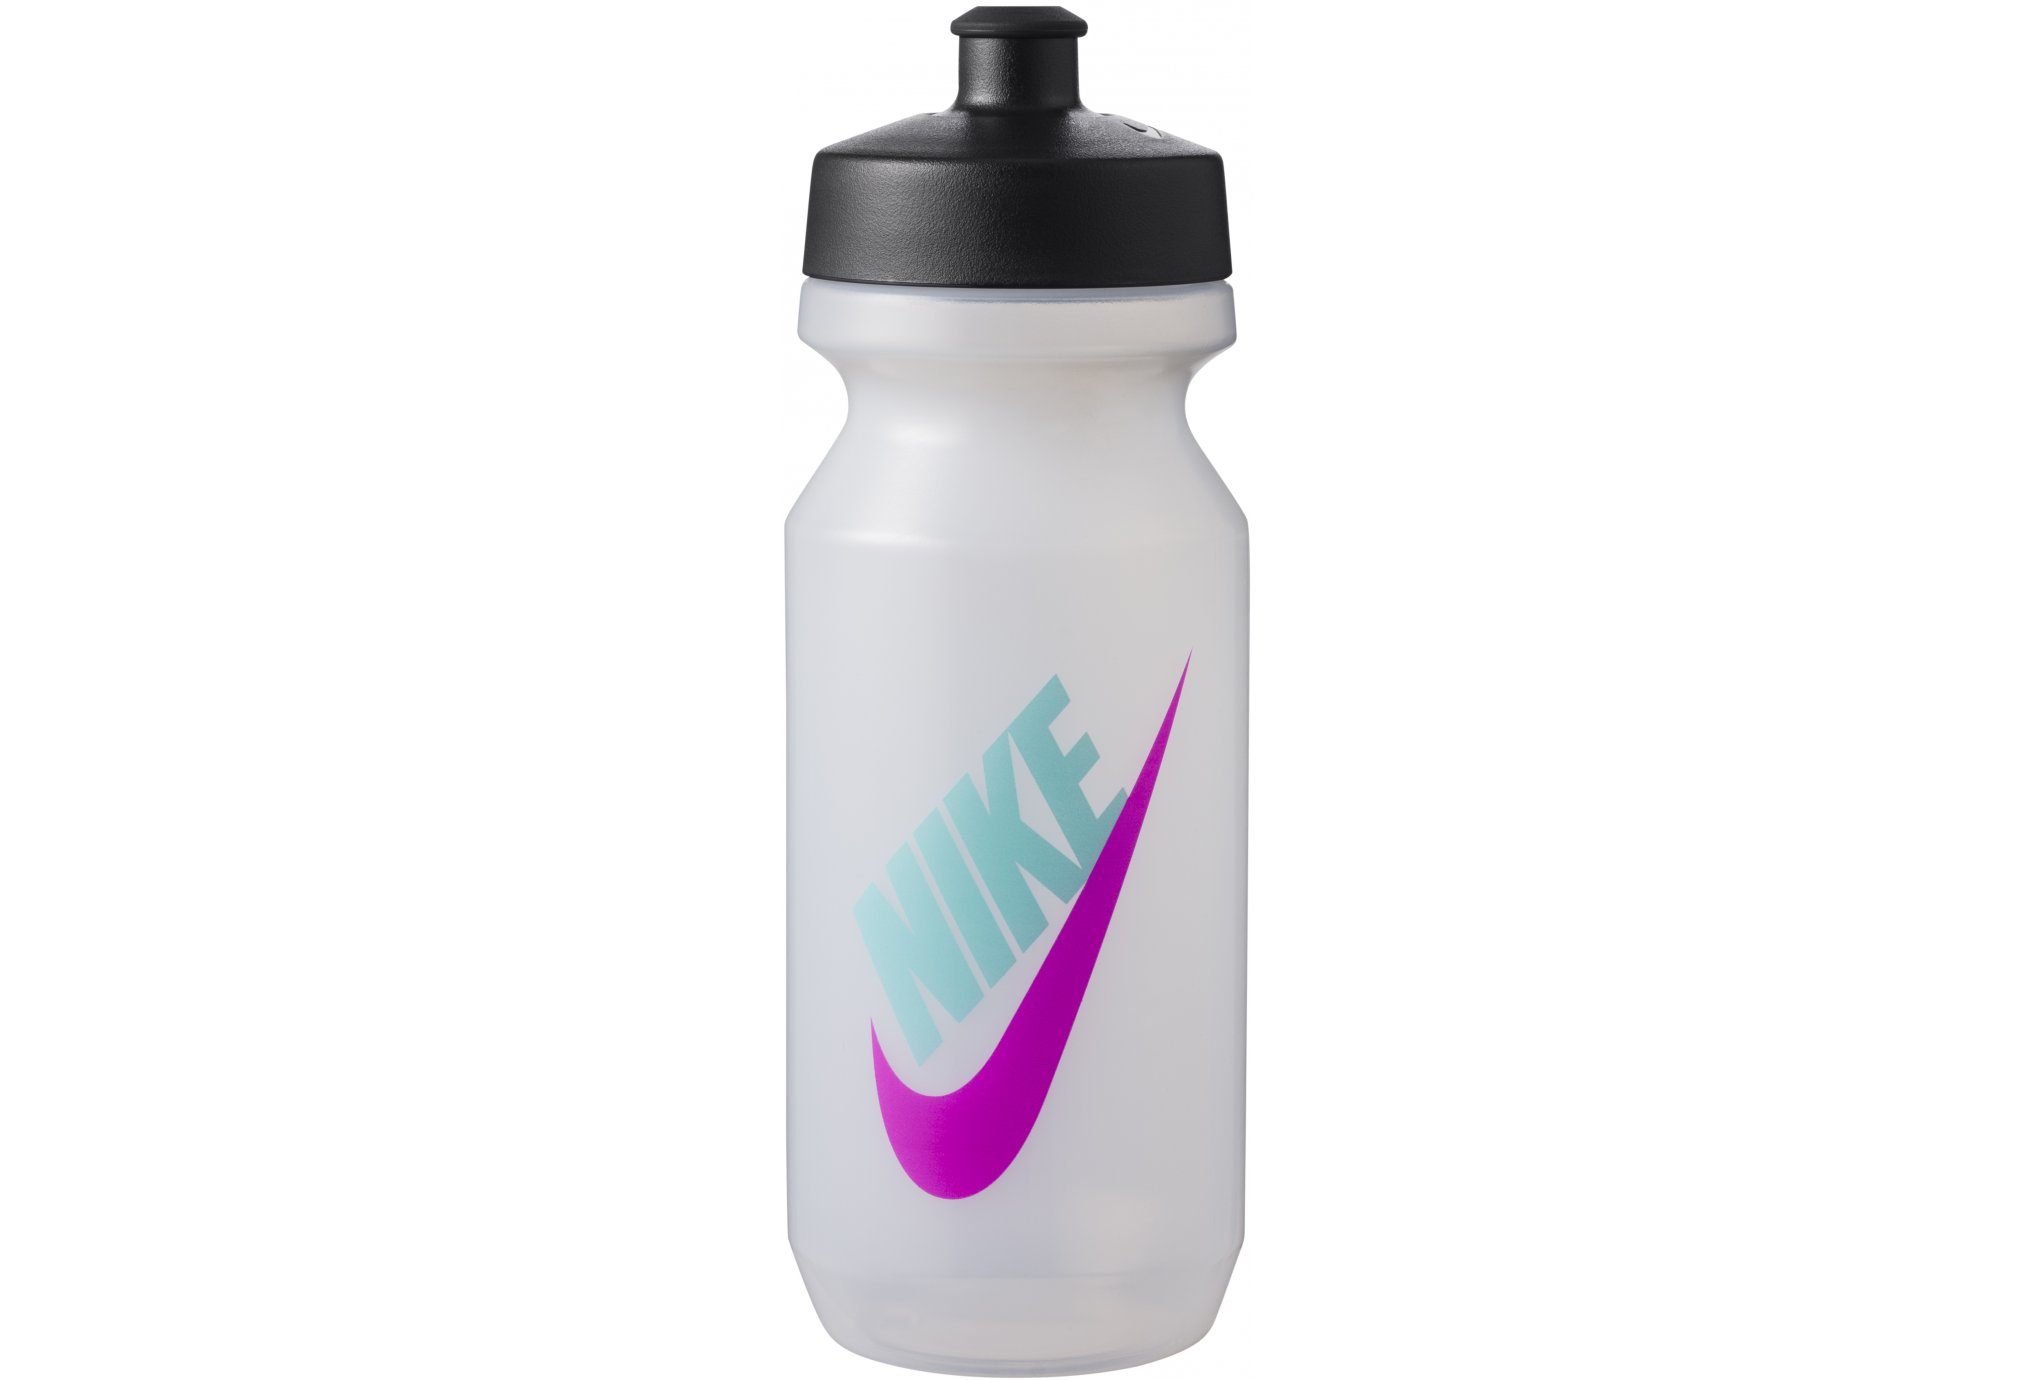 Nike Big Mouth 2.0 650mL Sac hydratation / Gourde